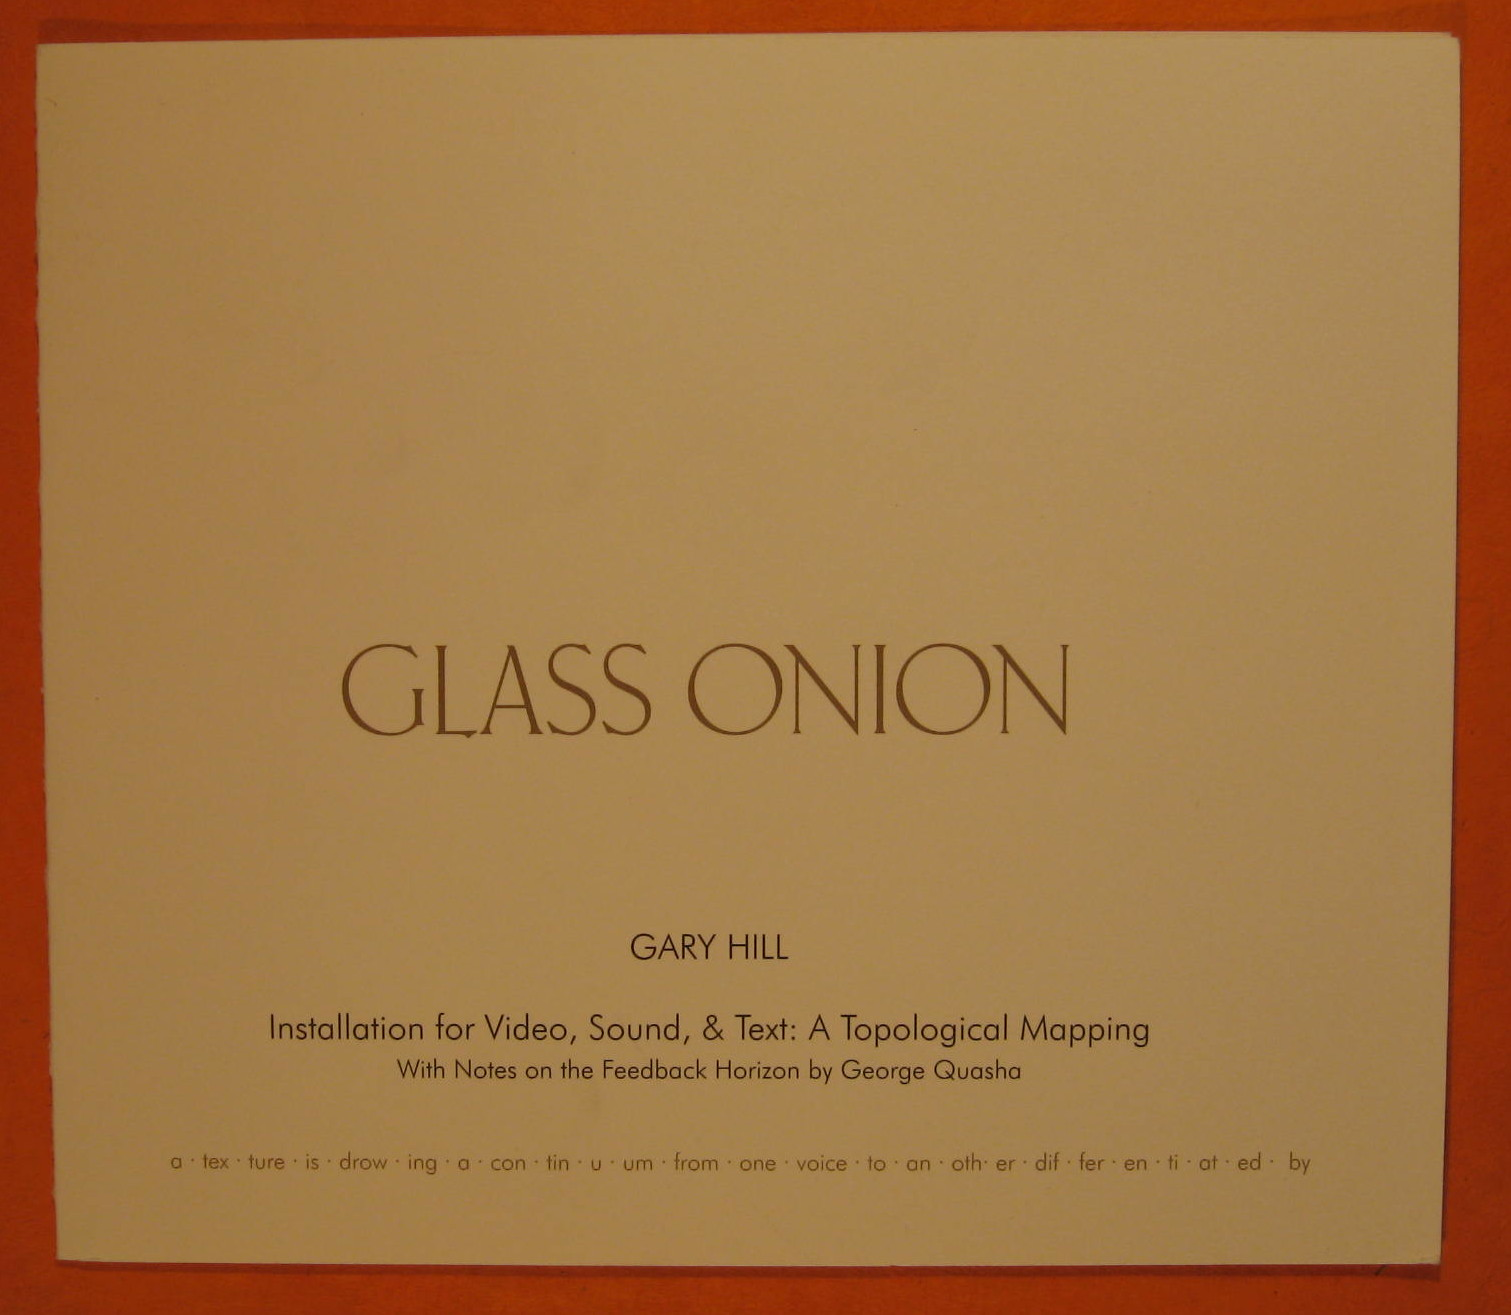 Glass Onion -- Gary Hill: installation for Video, Sound, & Text: a Topological Mapping, Quasha, George